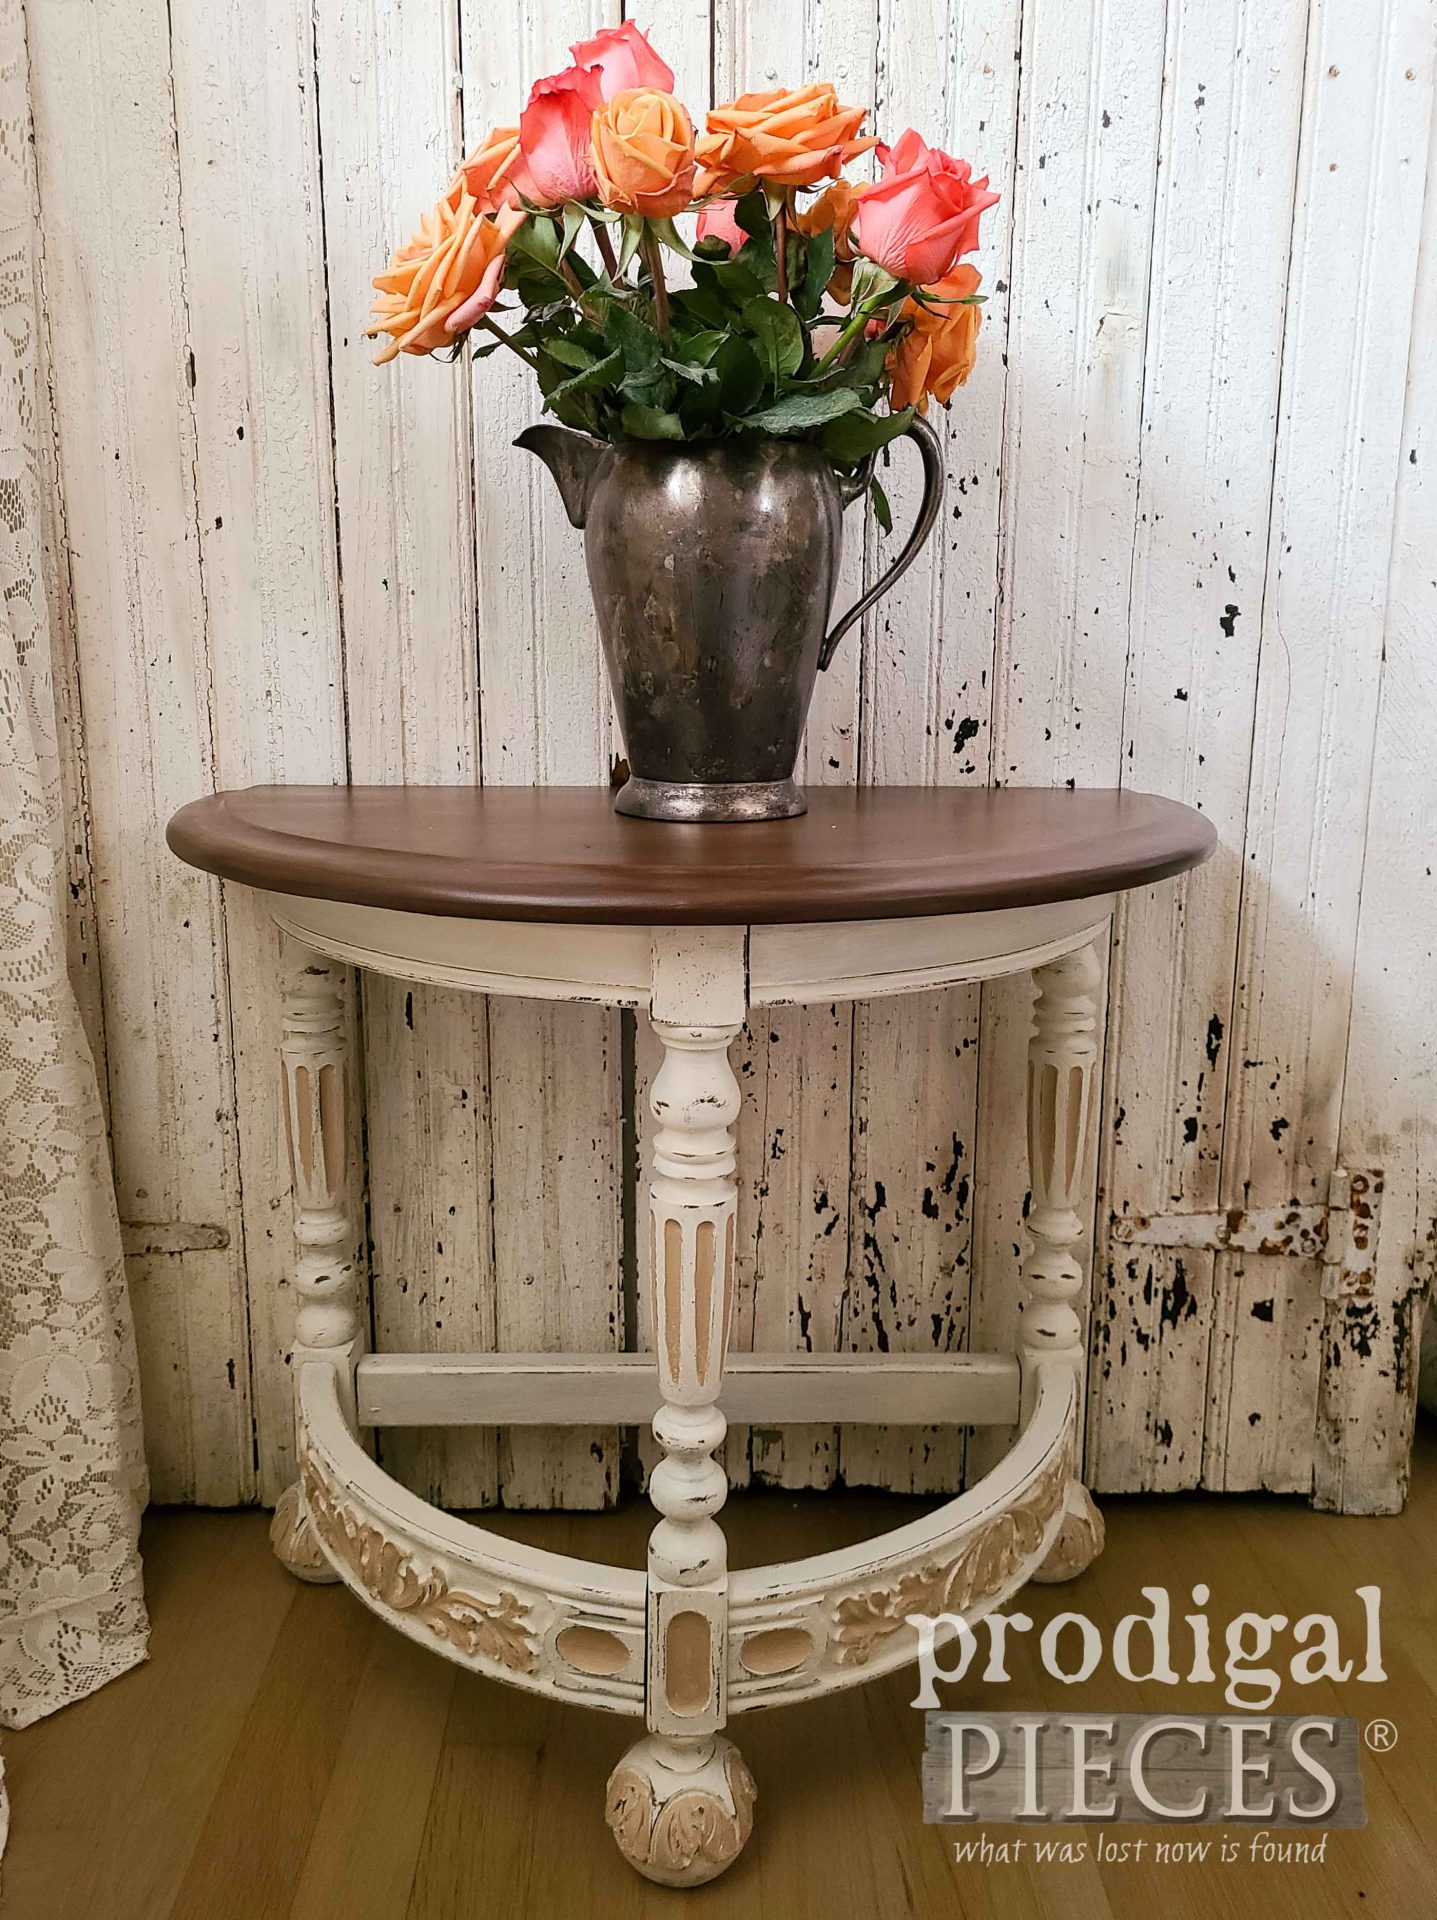 Antique Half Round Table Refinished and Painted by Larissa of Prodigal Pieces | prodigalpieces.com #prodigalpieces #furniture #antique #home #homedecor